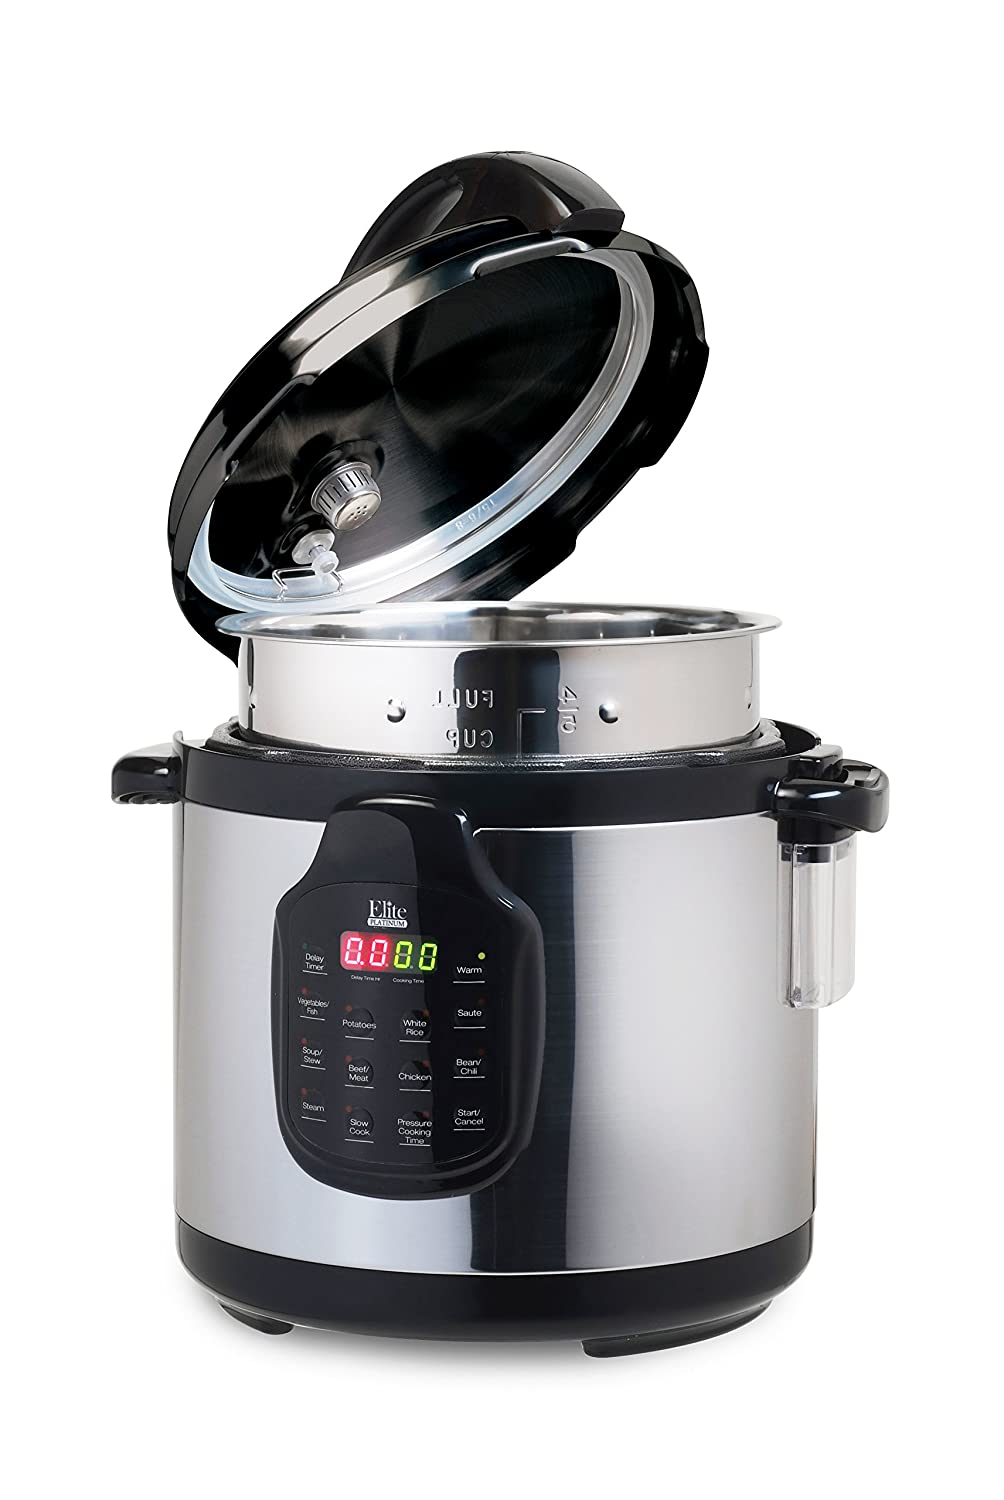 Elite Platinum 11-in-1 Maxi-Matic Elite Platinum EPC-678 Electric Pressure Cooker, Slow Cooker, with 6Qt. Tri-ply Stainless Steel Inner Pot